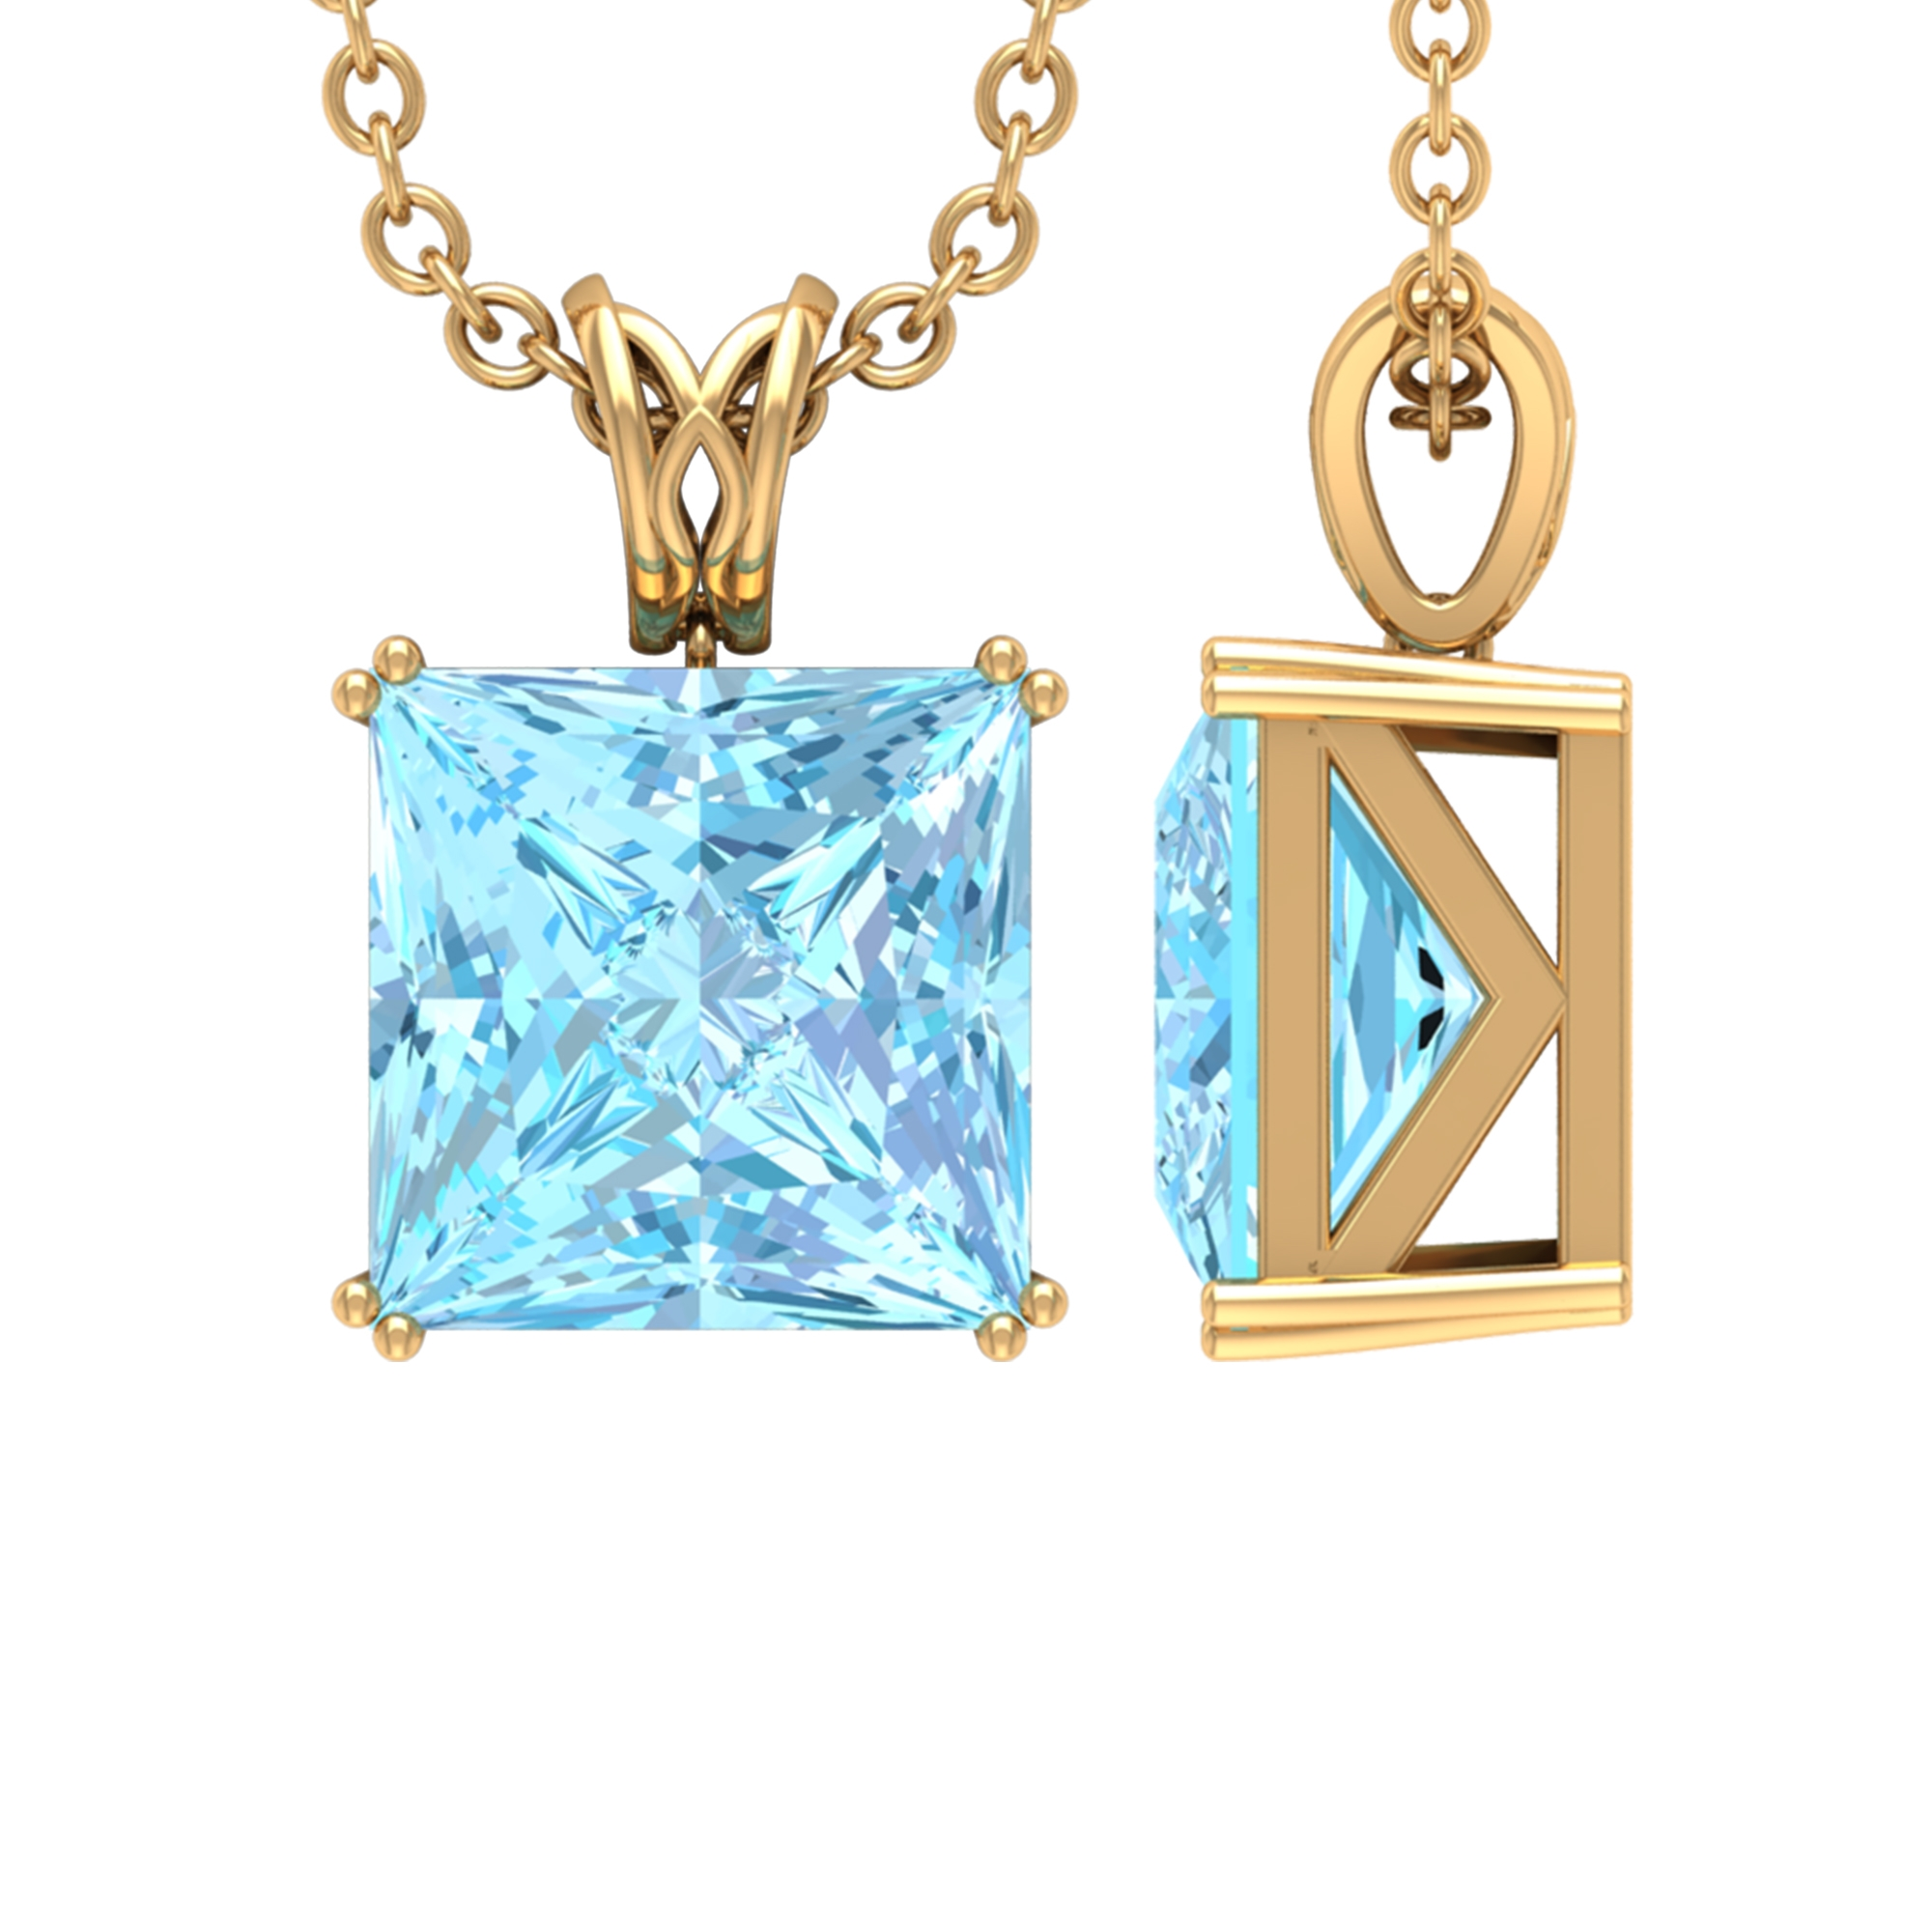 7X7 MM Princess Cut Aquamarine Solitaire Pendant in Double Prong Setting with Decorative Bail